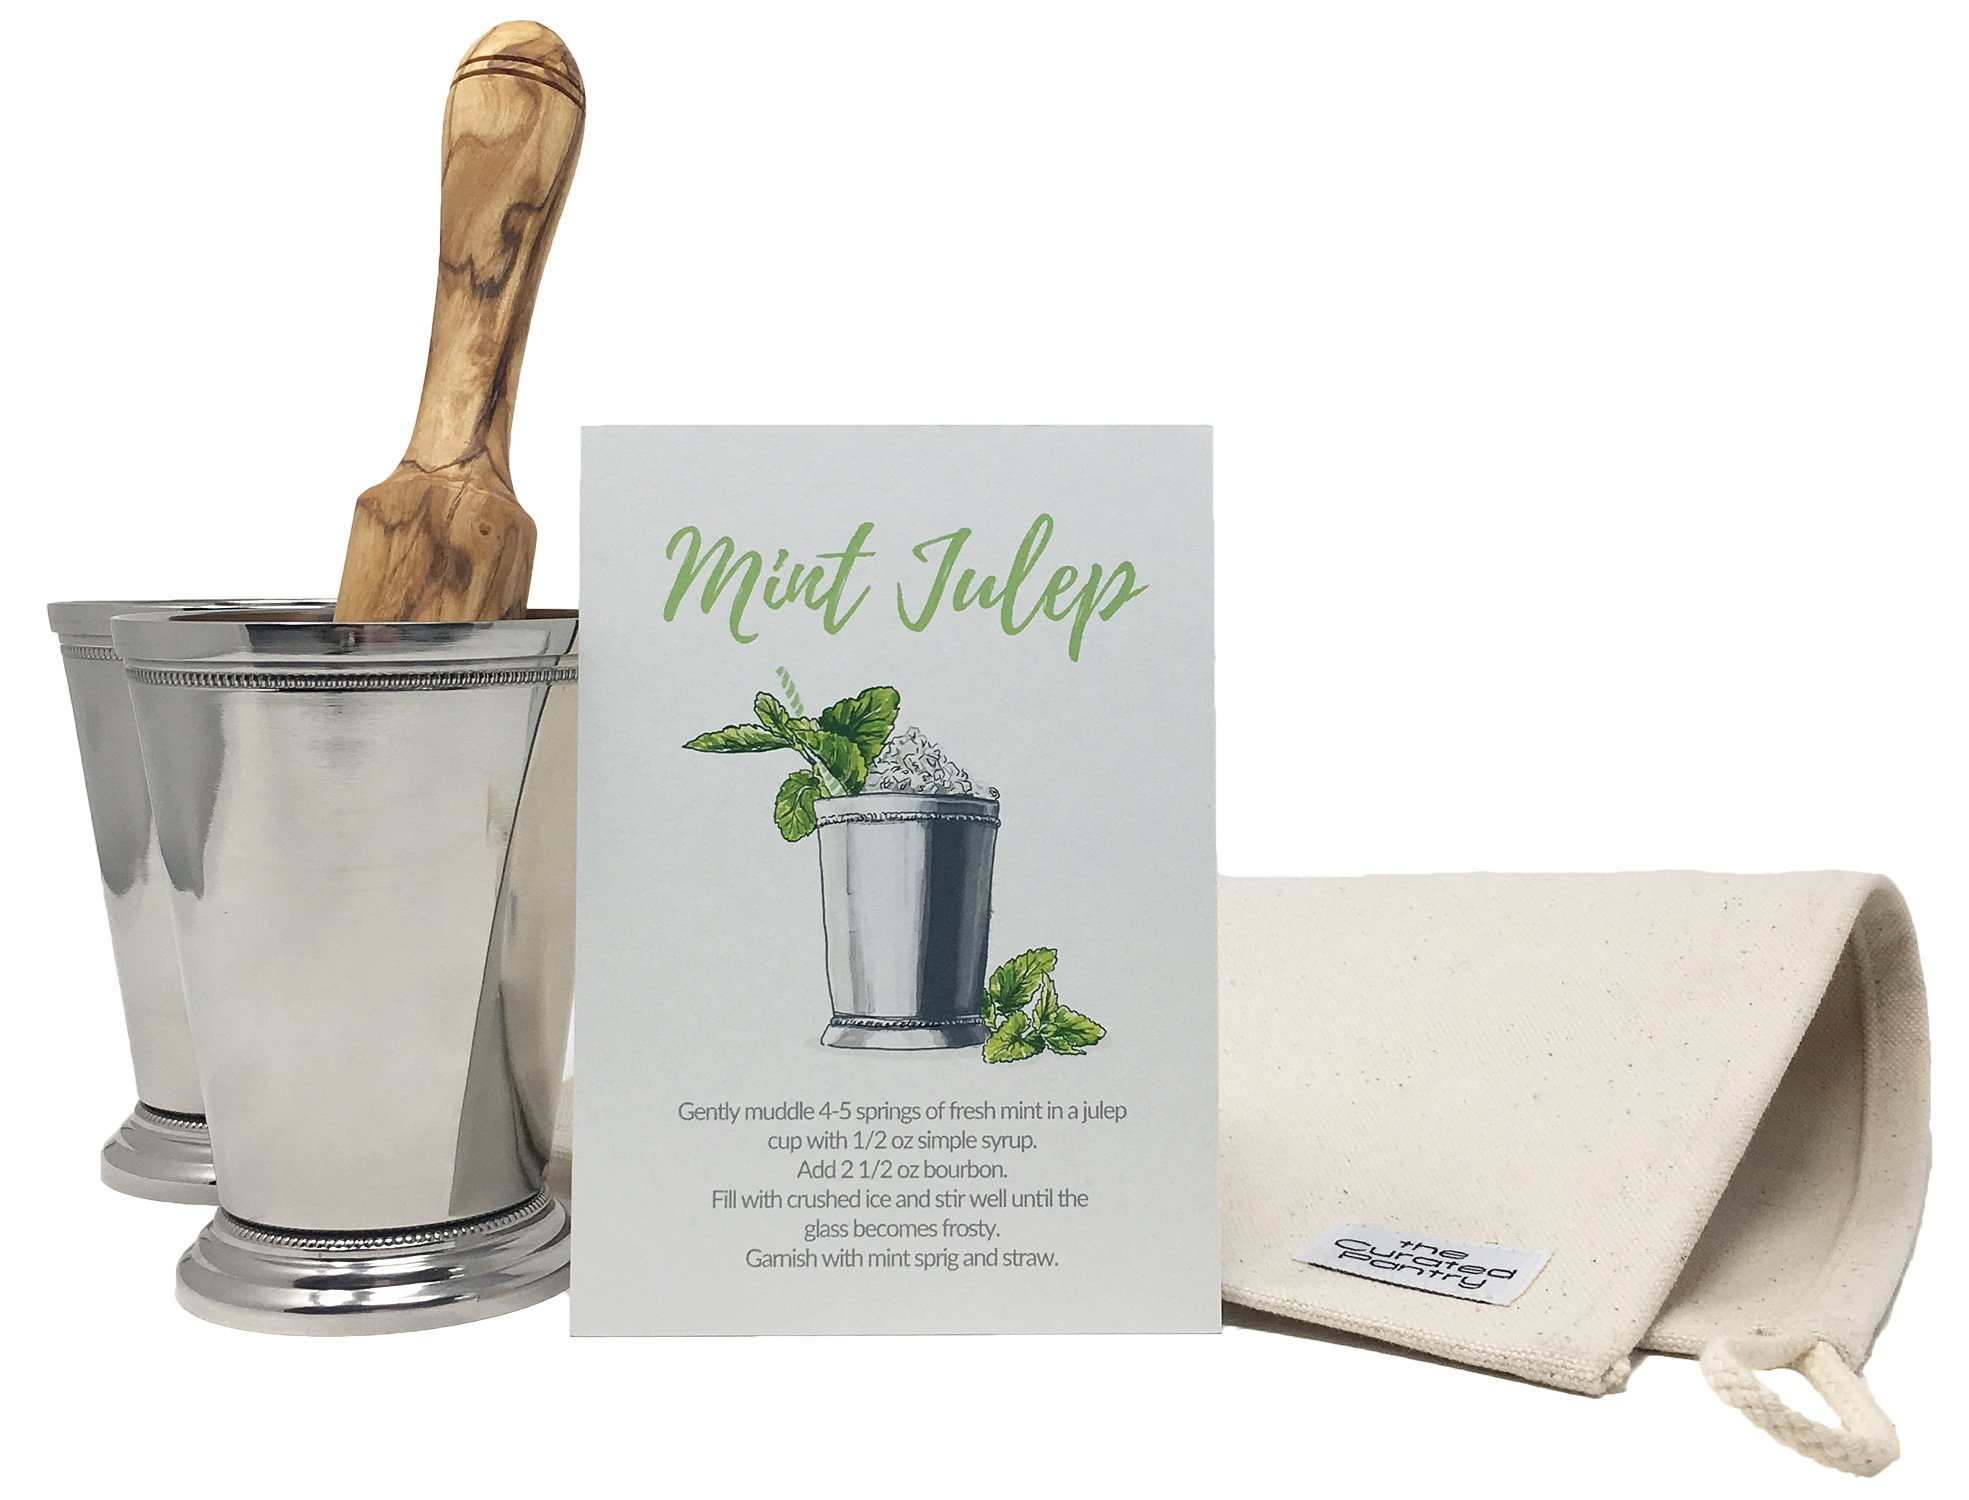 Mint Julep Cocktail Essential Tool Kit - (2) 12oz Cups, Lewis Bag, Muddler/Mallet and Recipe Card (5 items) by The Curated Pantry